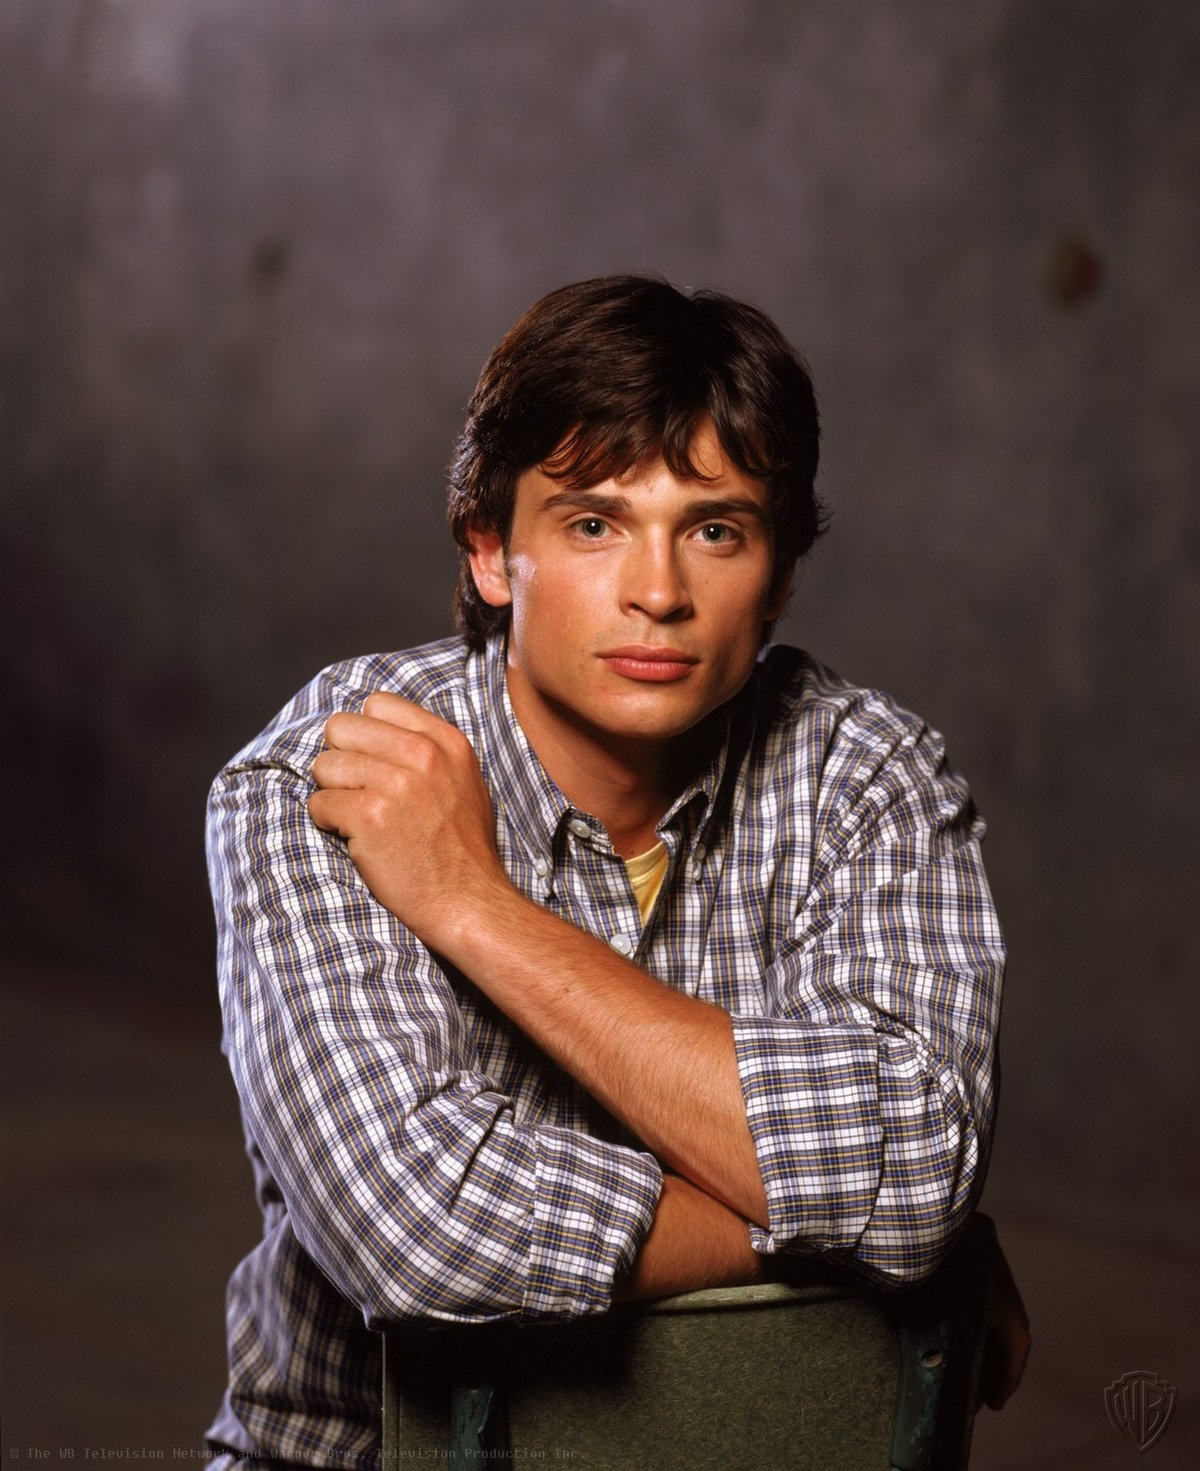 Tom welling teen picture — img 3